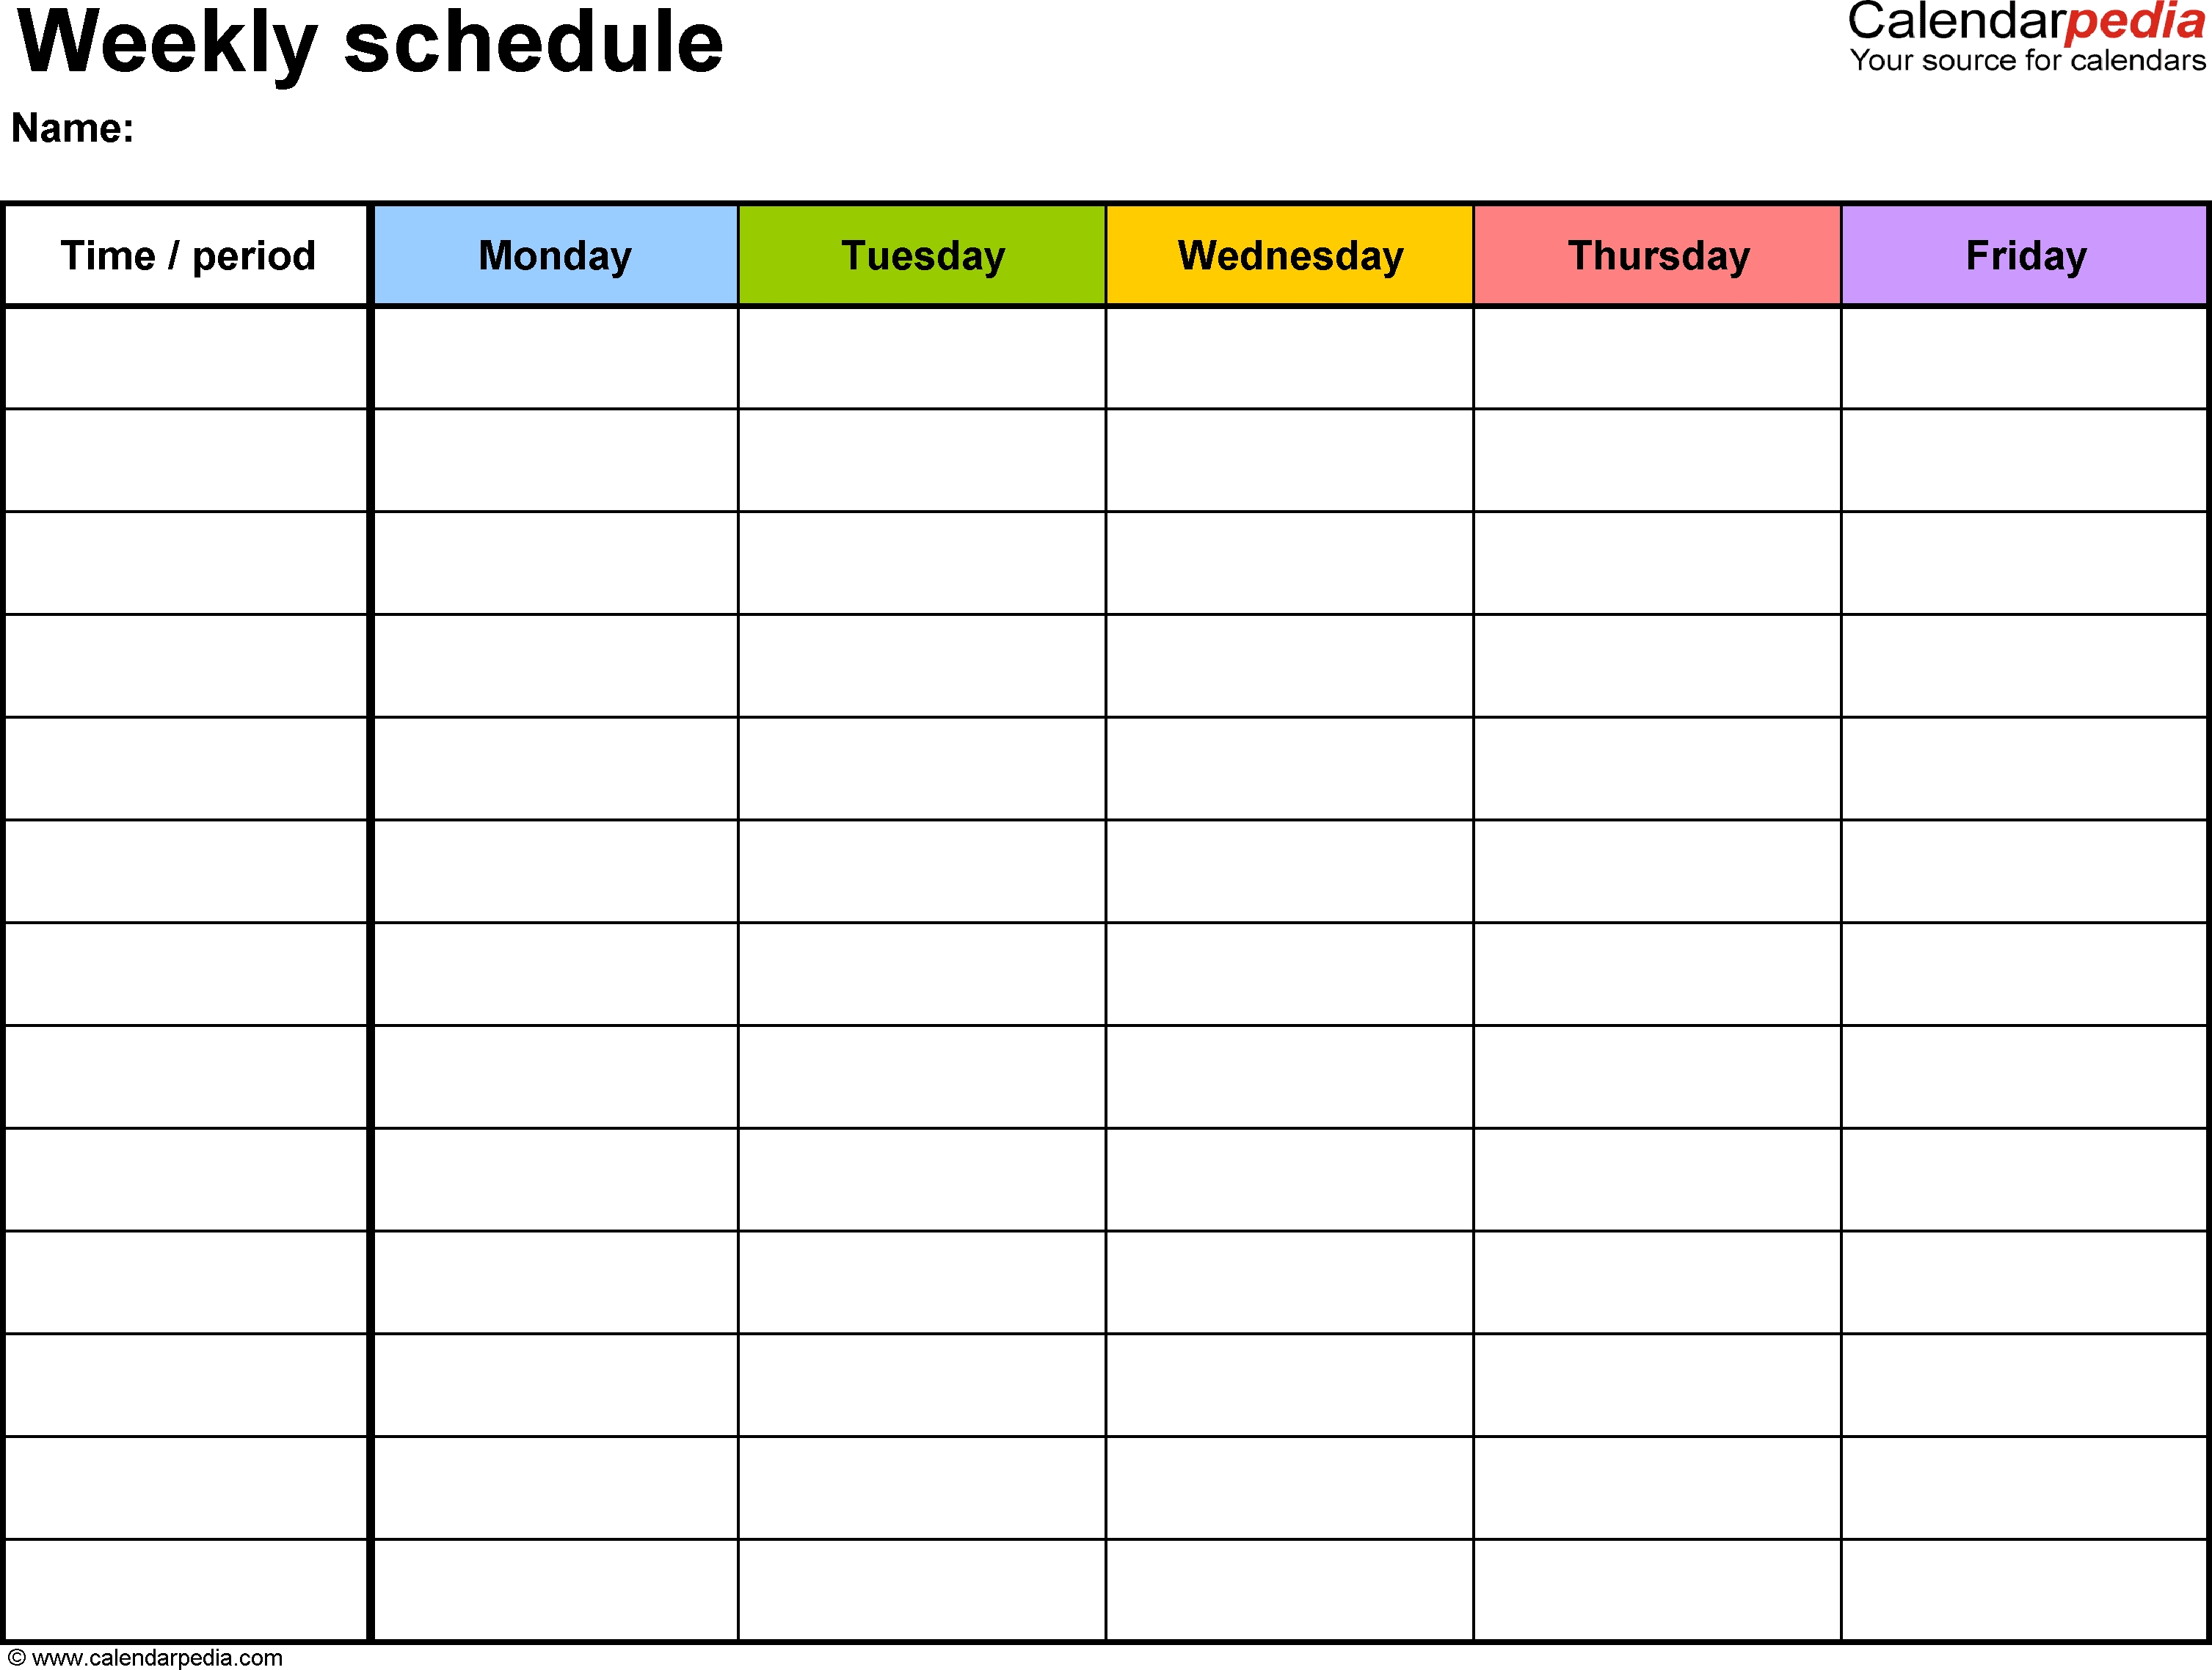 Free Weekly Schedule Templates For Word - 18 Templates in 7 Day Week Blank Calendar Printable